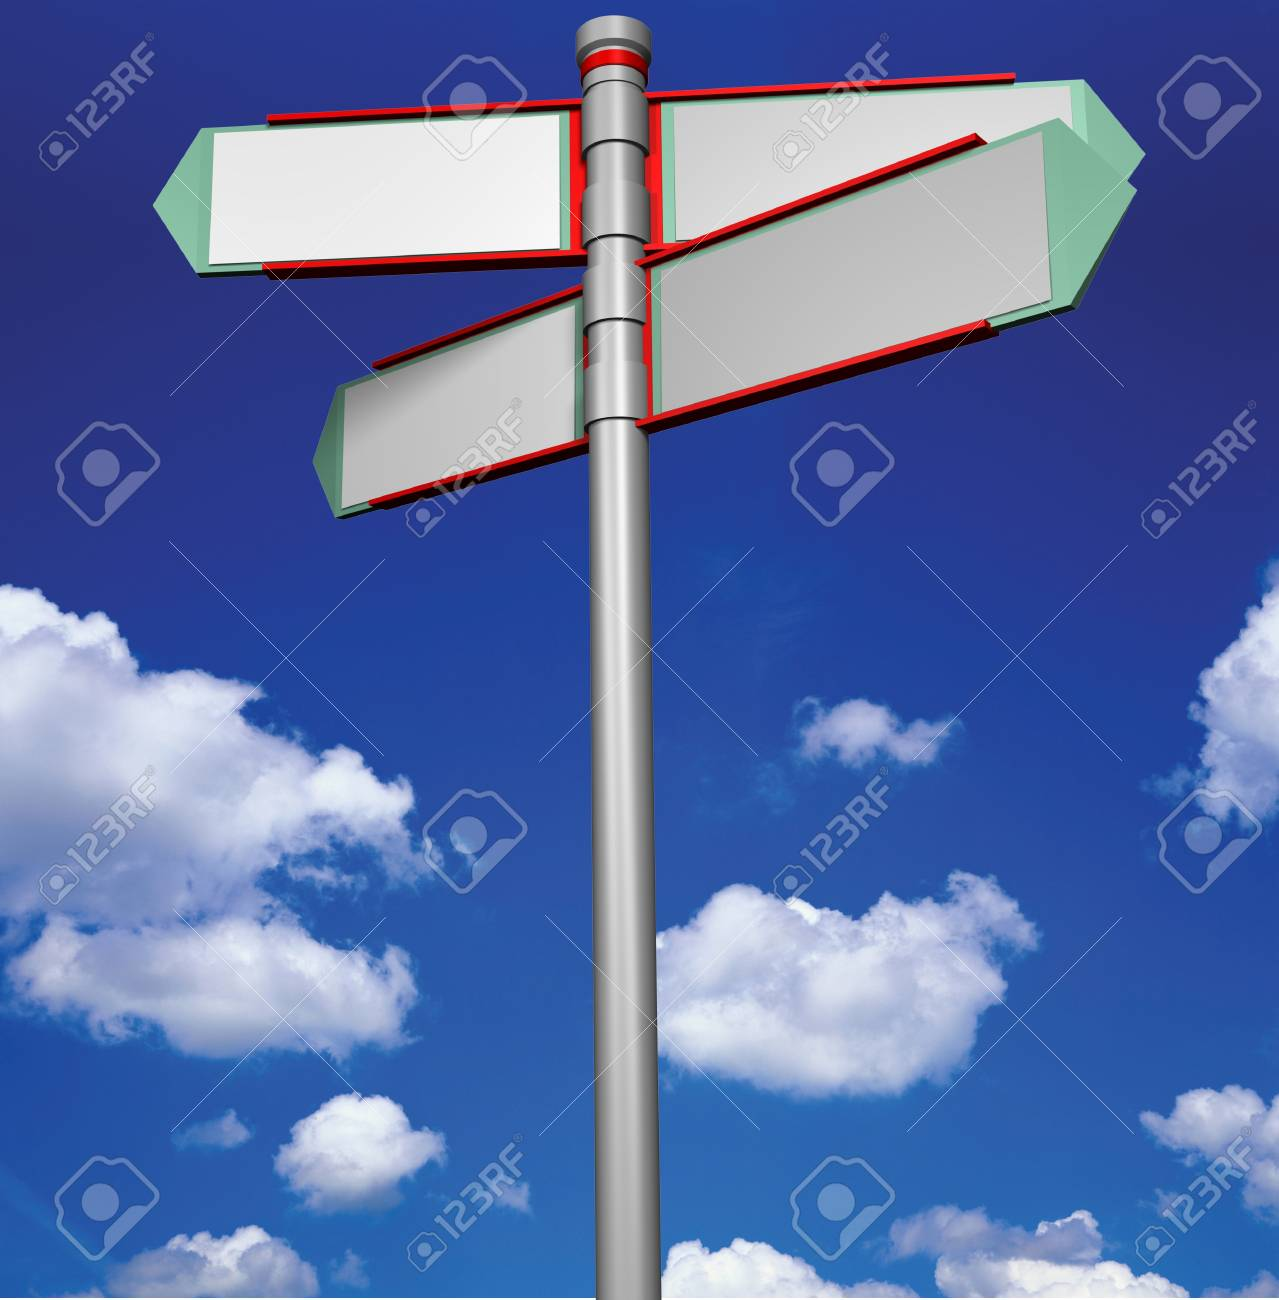 Blank signpost with background change Stock Photo - 12609228